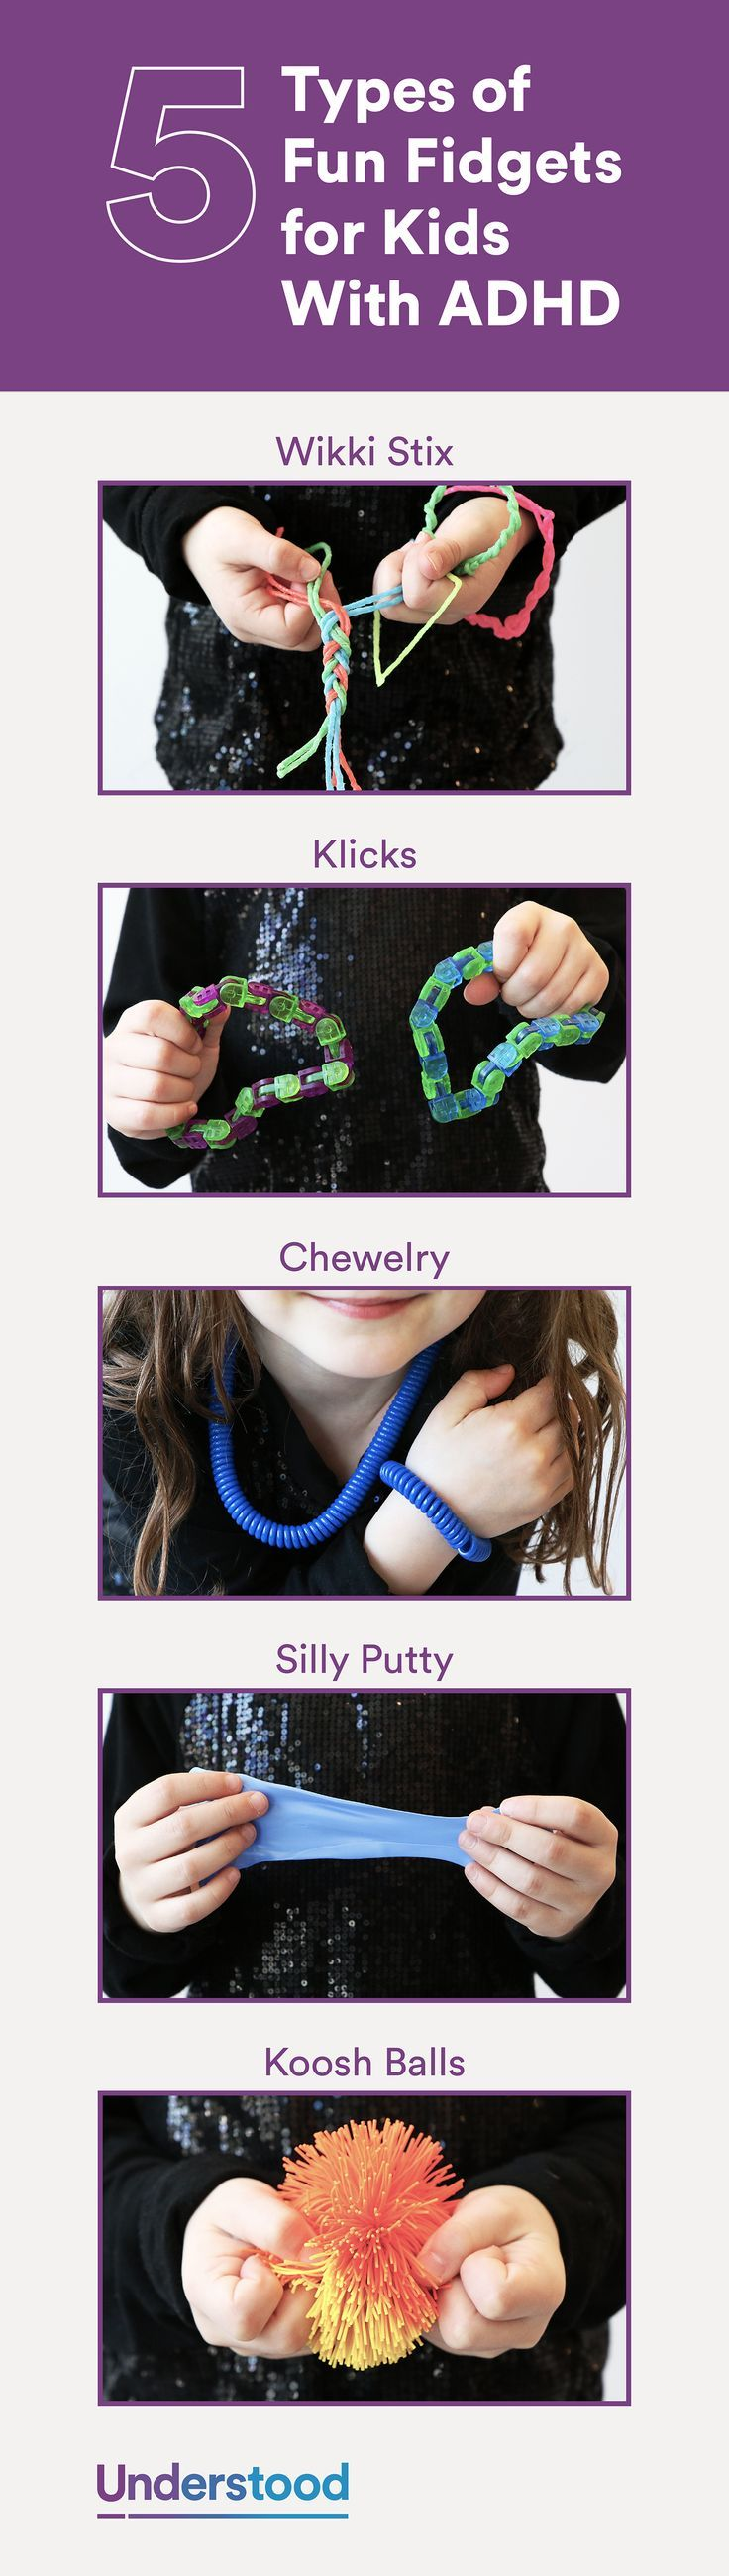 """Fidgets can help some kids with ADHD focus better. They're not """"one size fits all,"""" however. Different types of fidgets can meet different sensory needs. You can see which work best for your child, and then talk to the teacher about using them in class."""